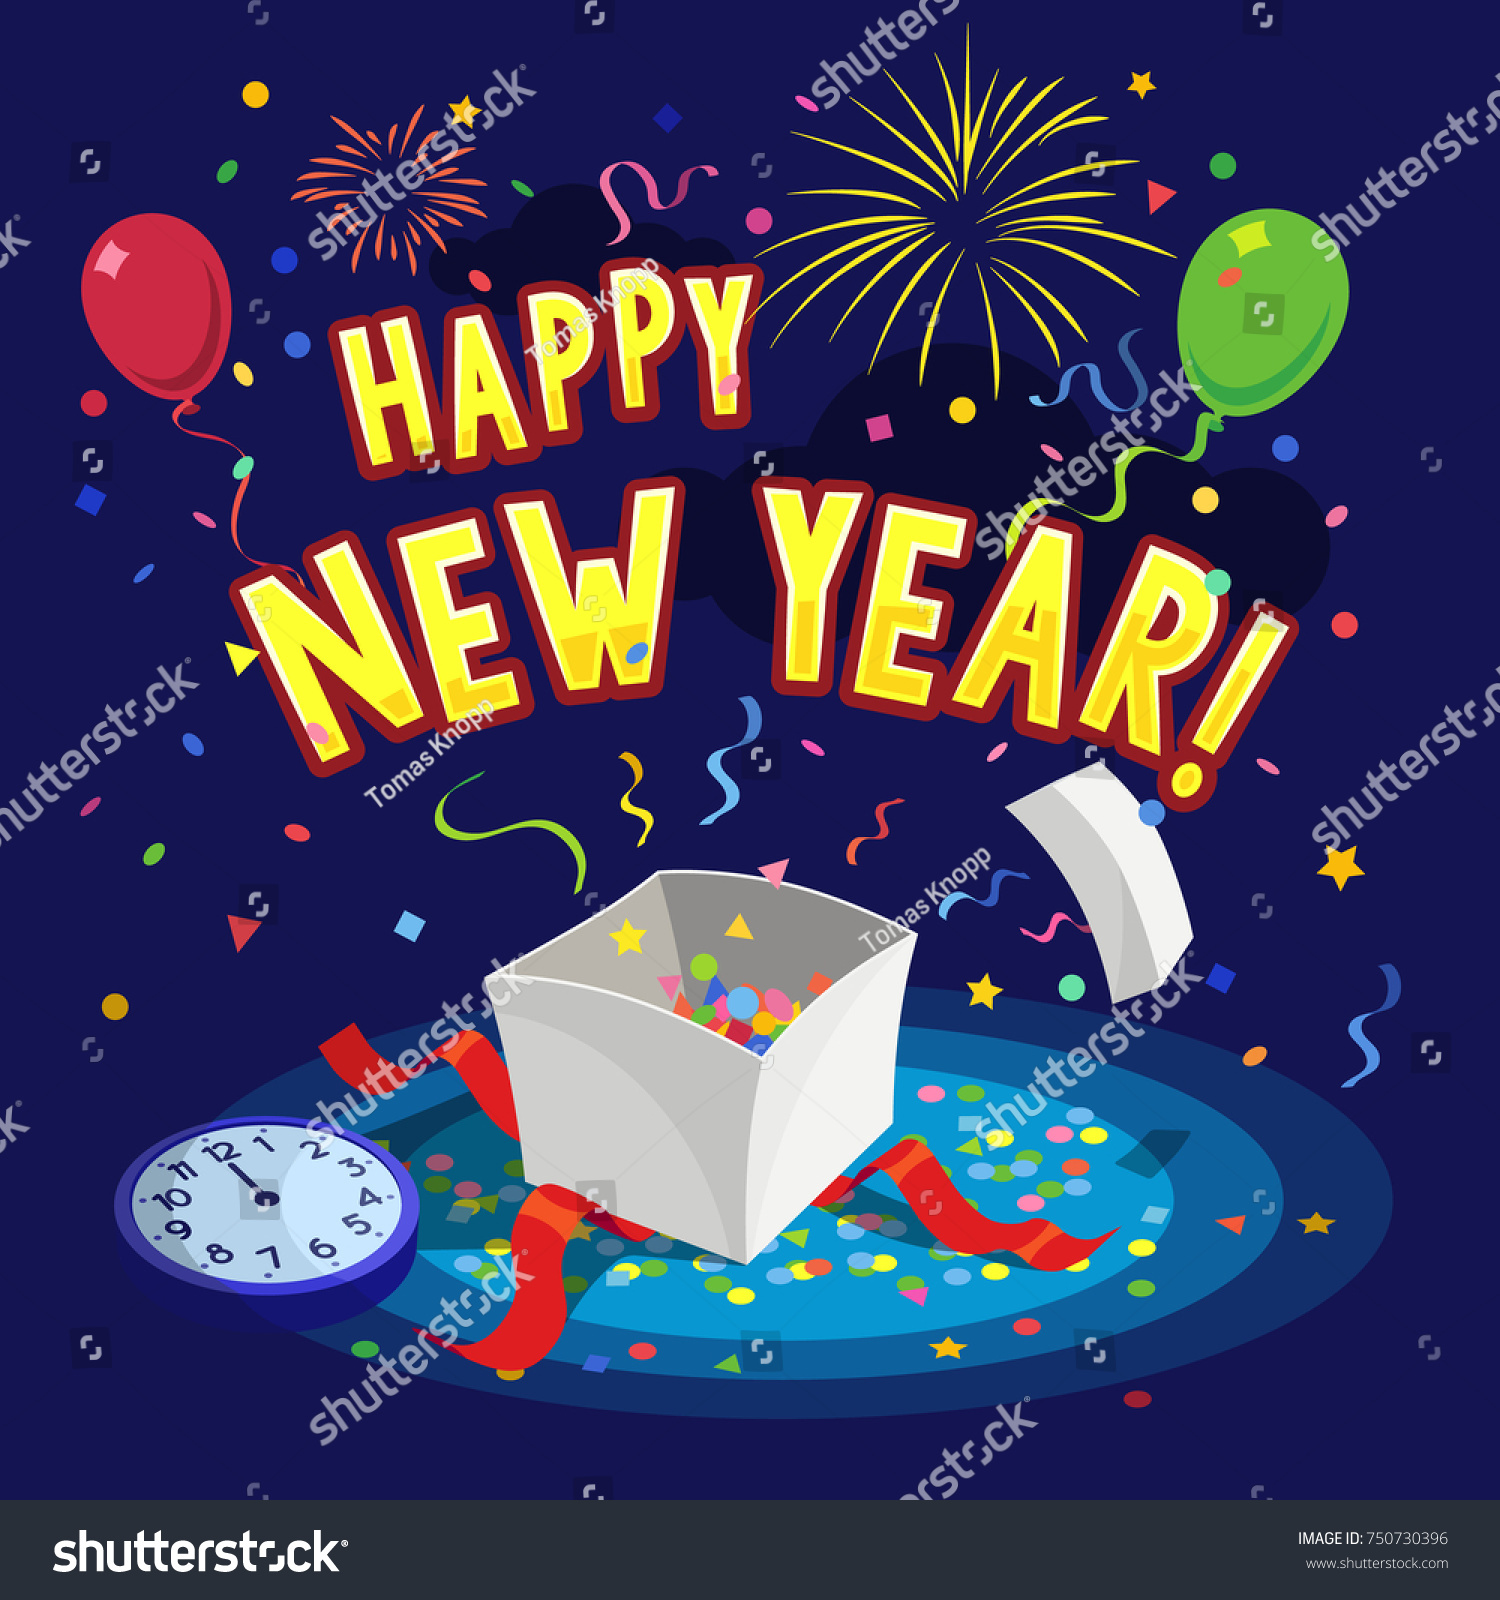 Template happy new year greeting card stock vector 750730396 template of happy new year greeting card with balloons fireworks gift box and confetti kristyandbryce Images